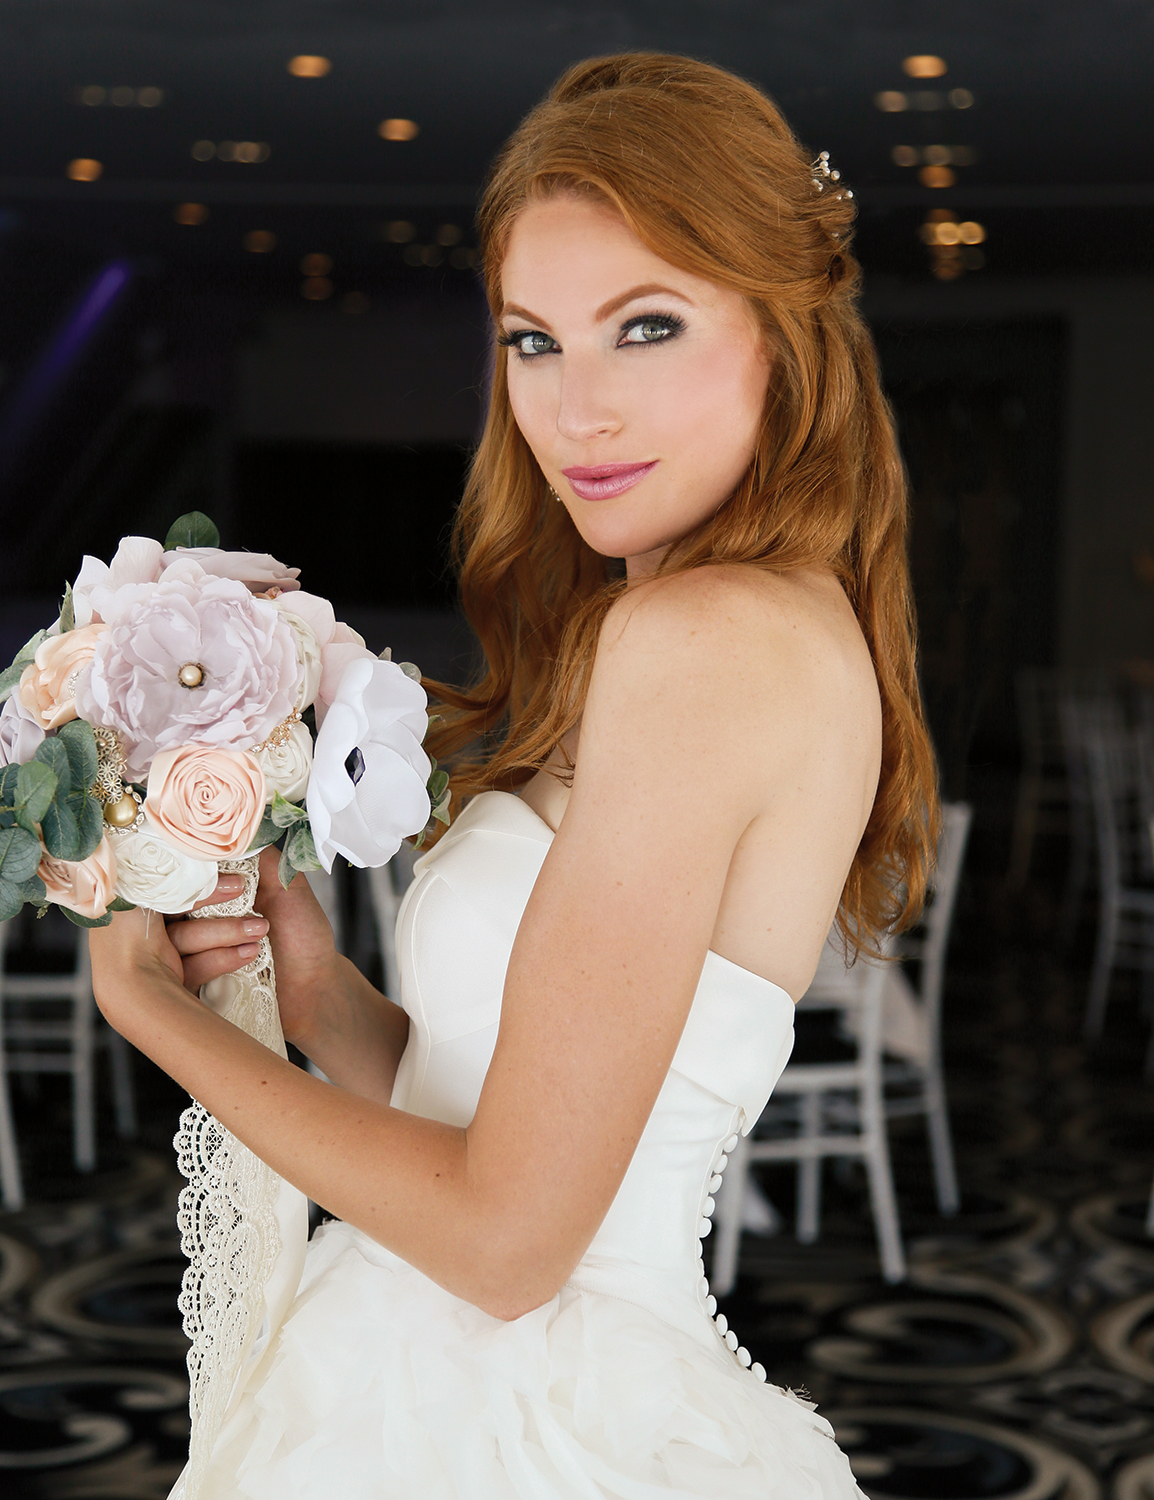 Alison Hamilton of NY Model Mgt., Hair & Makeup by The Fountain Spa